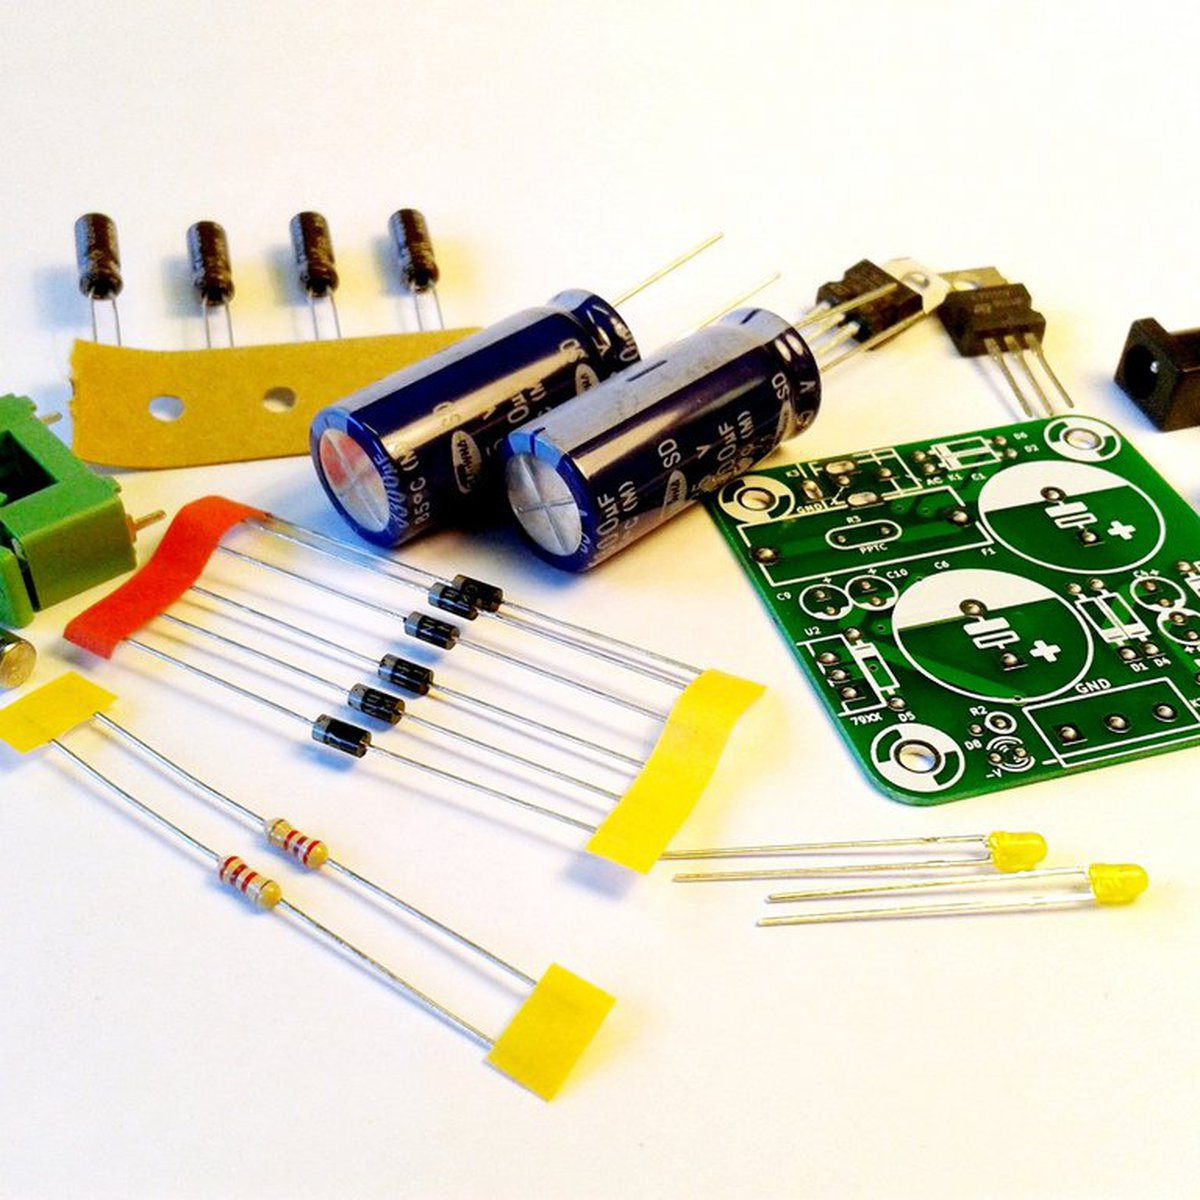 Mini Dual Power Supply From Electronic Things And Stuff On Tindie Free Schematic Diagram Regulated Circuit Using